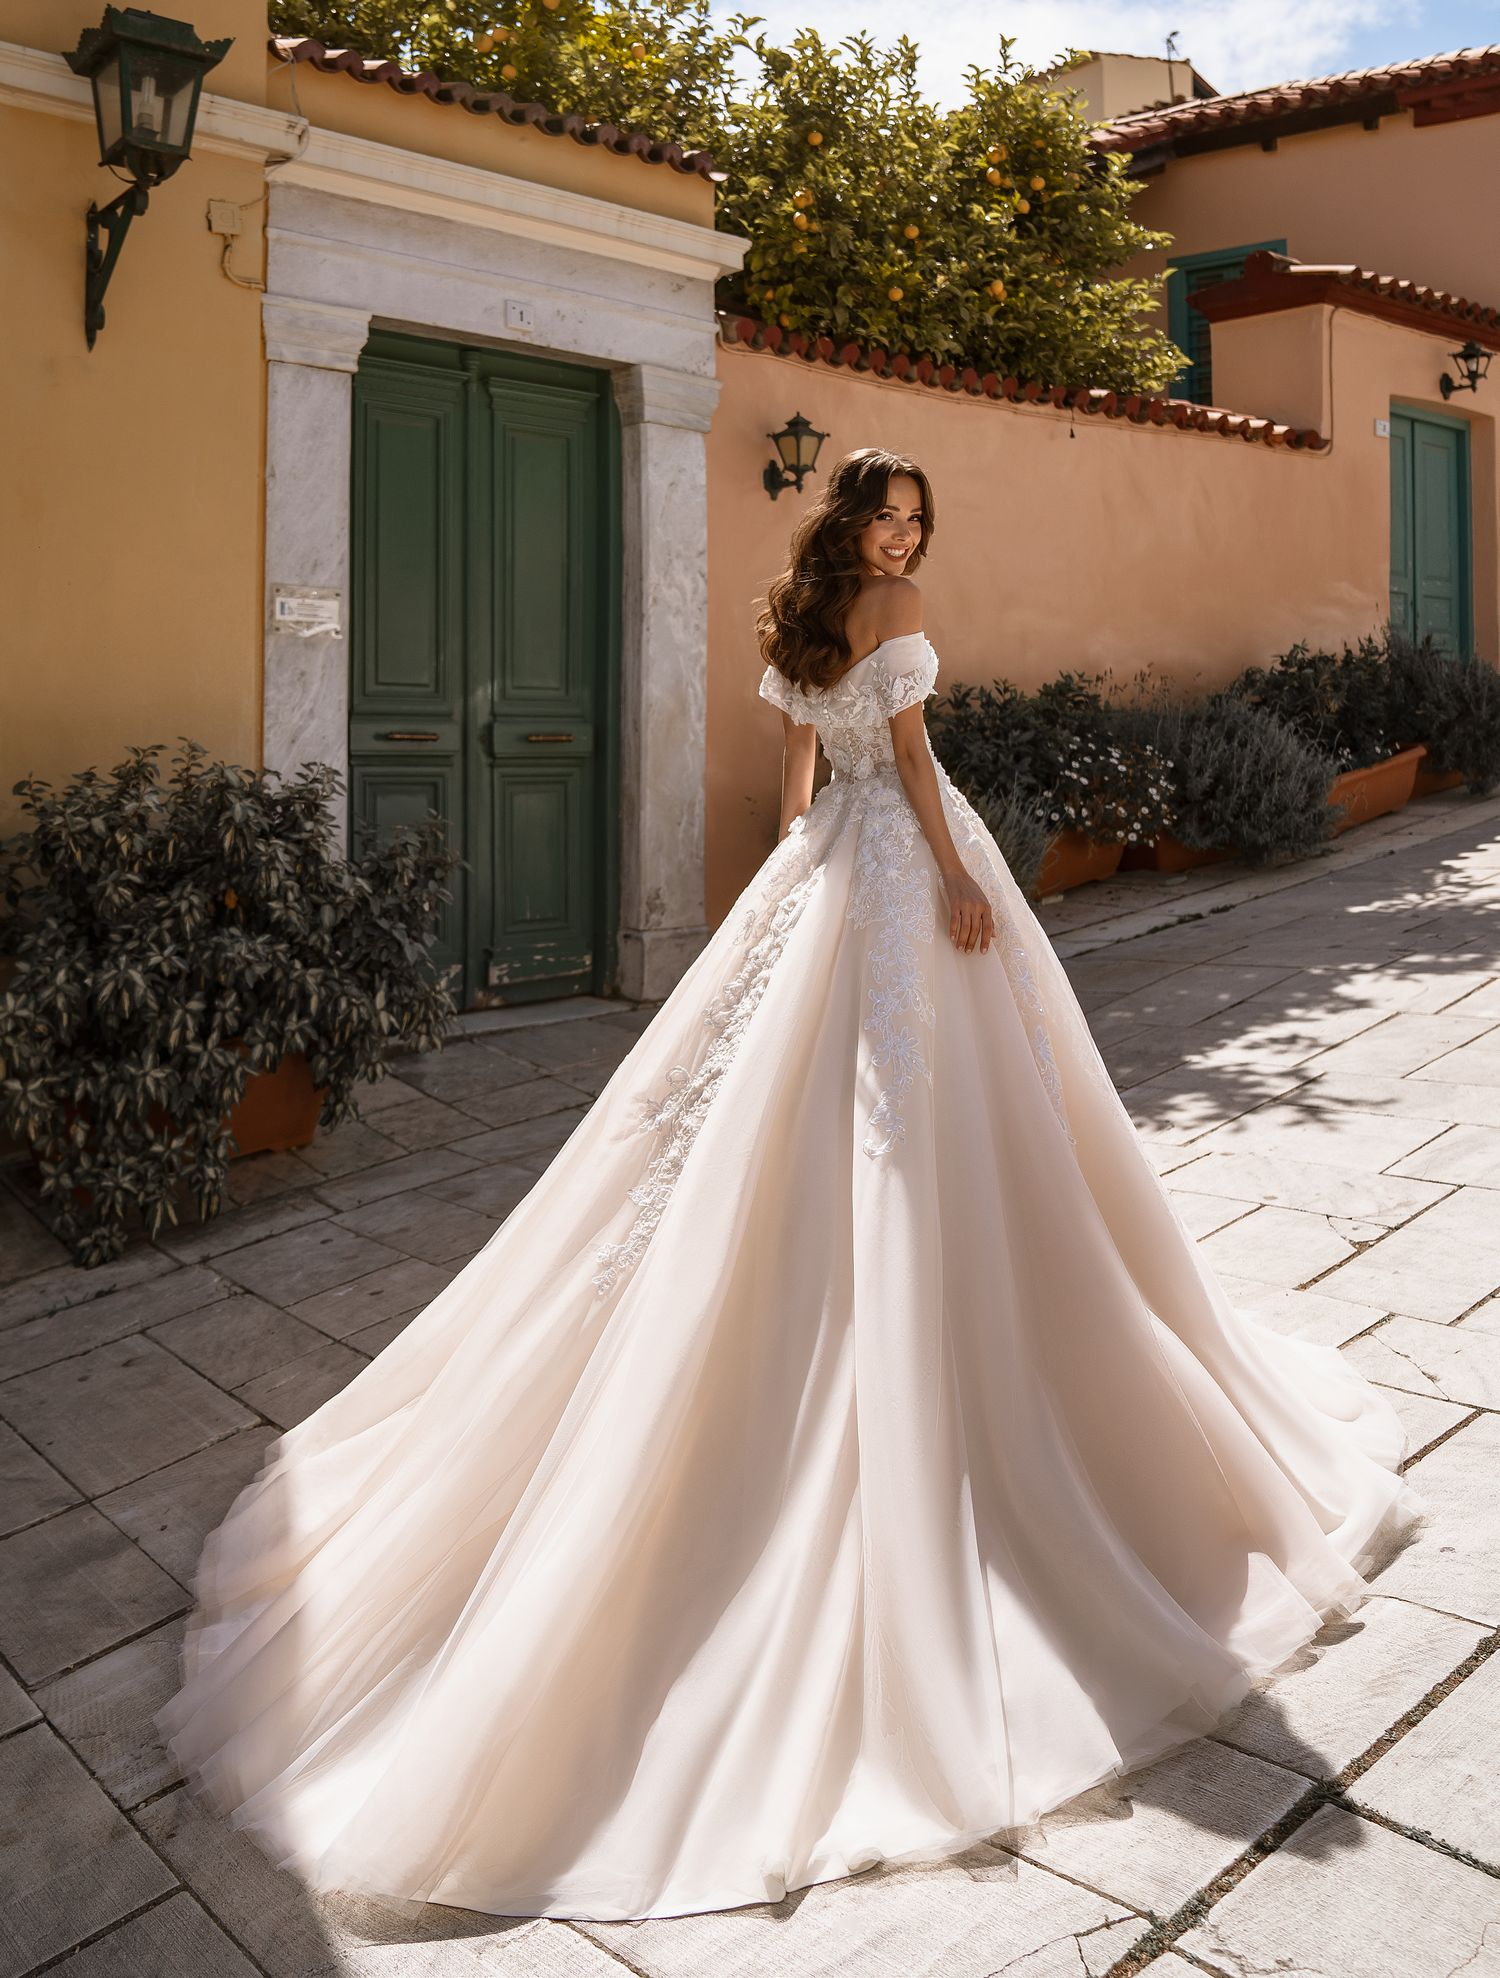 Full bridal gown classic A - silhouette from TM Supernova wholesale-1